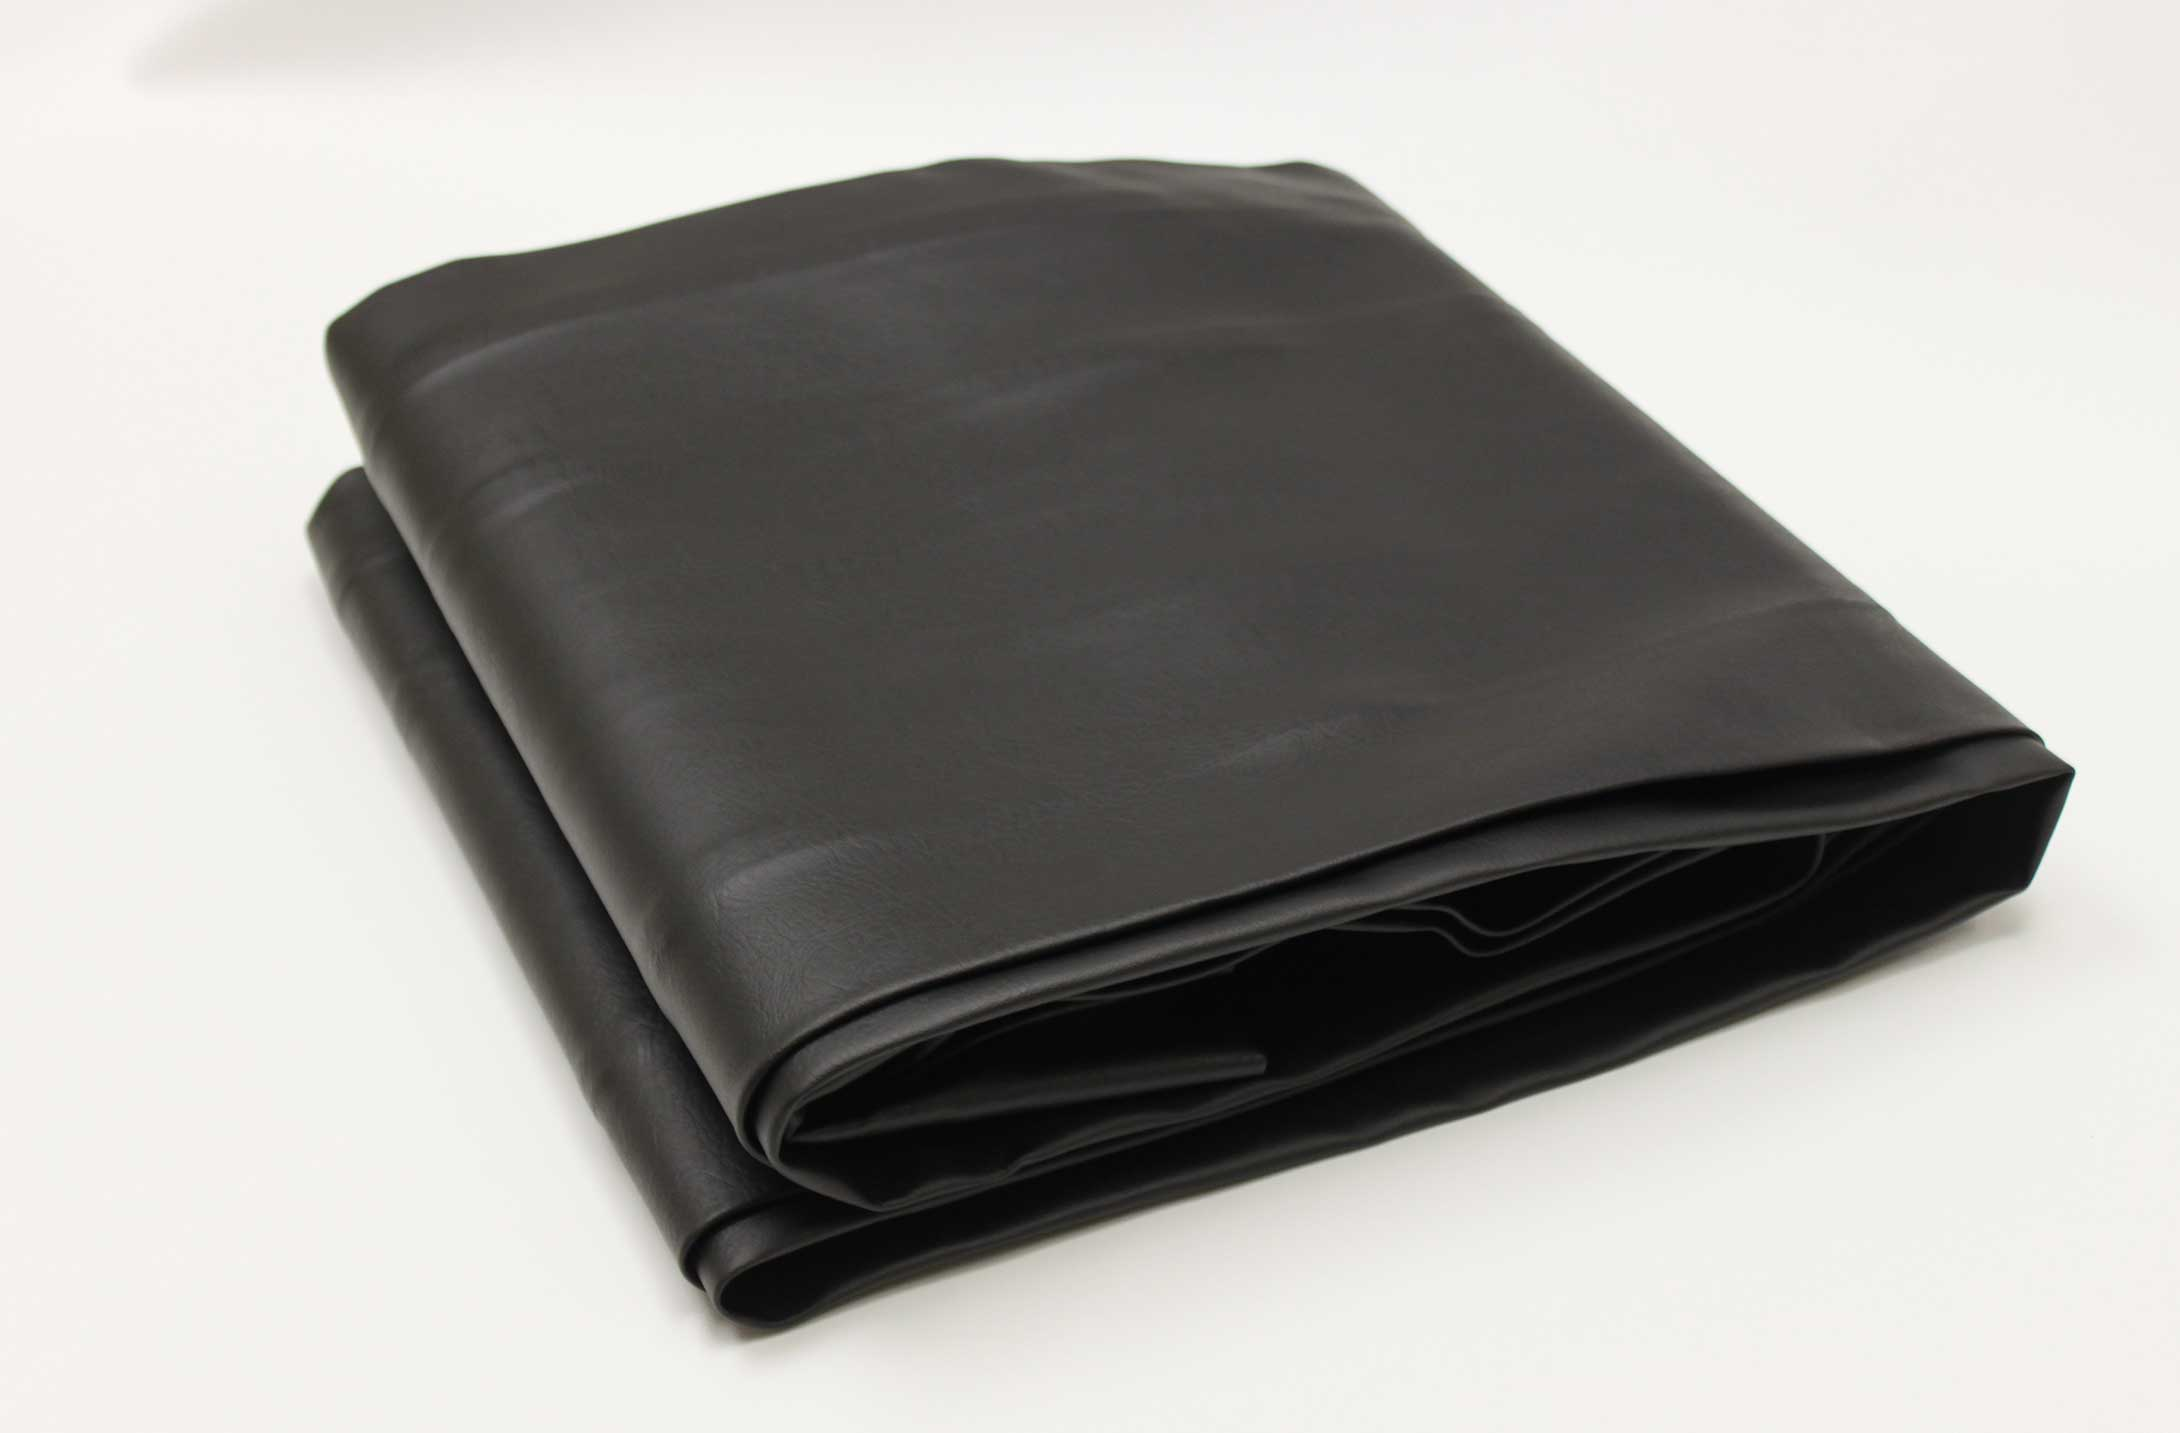 Black leather-like vinyl custom outdoor pool table cover from R\u0026R Outdoors All Weather & Outdoor Pool Table Covers - R\u0026R Outdoors Inc. All Weather Billiards